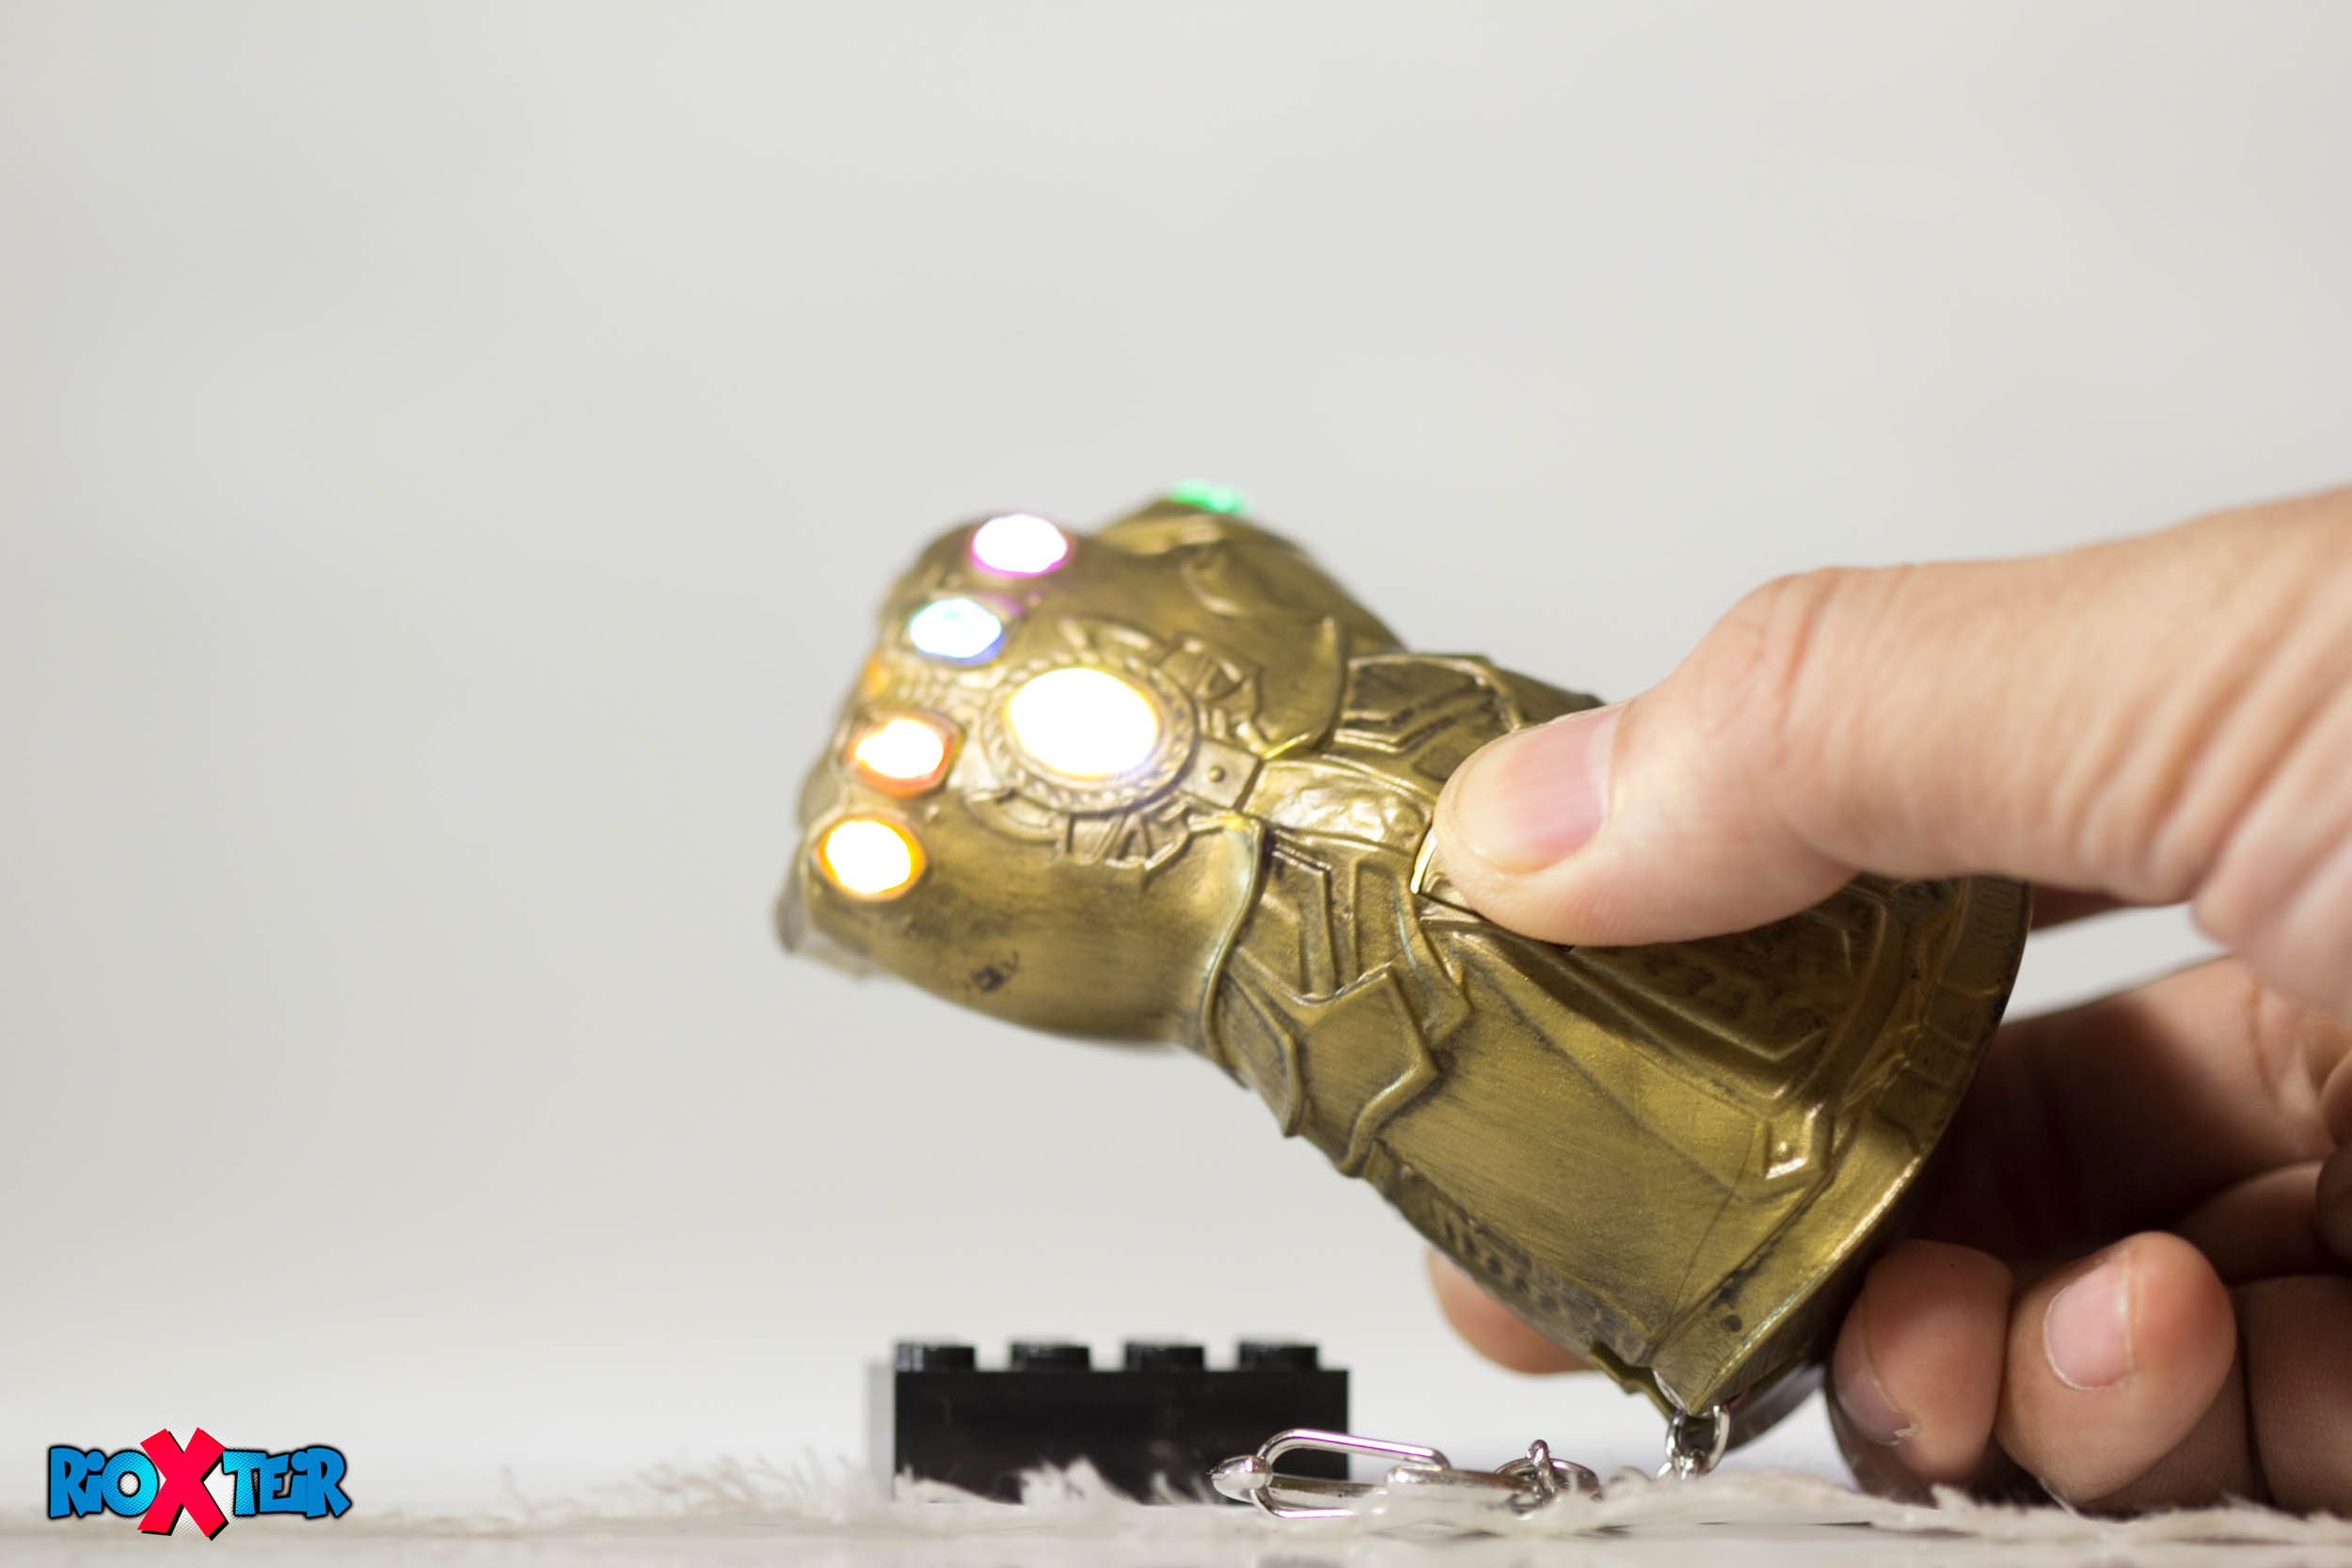 Avengers Infinity War Thanos Gauntlet Review